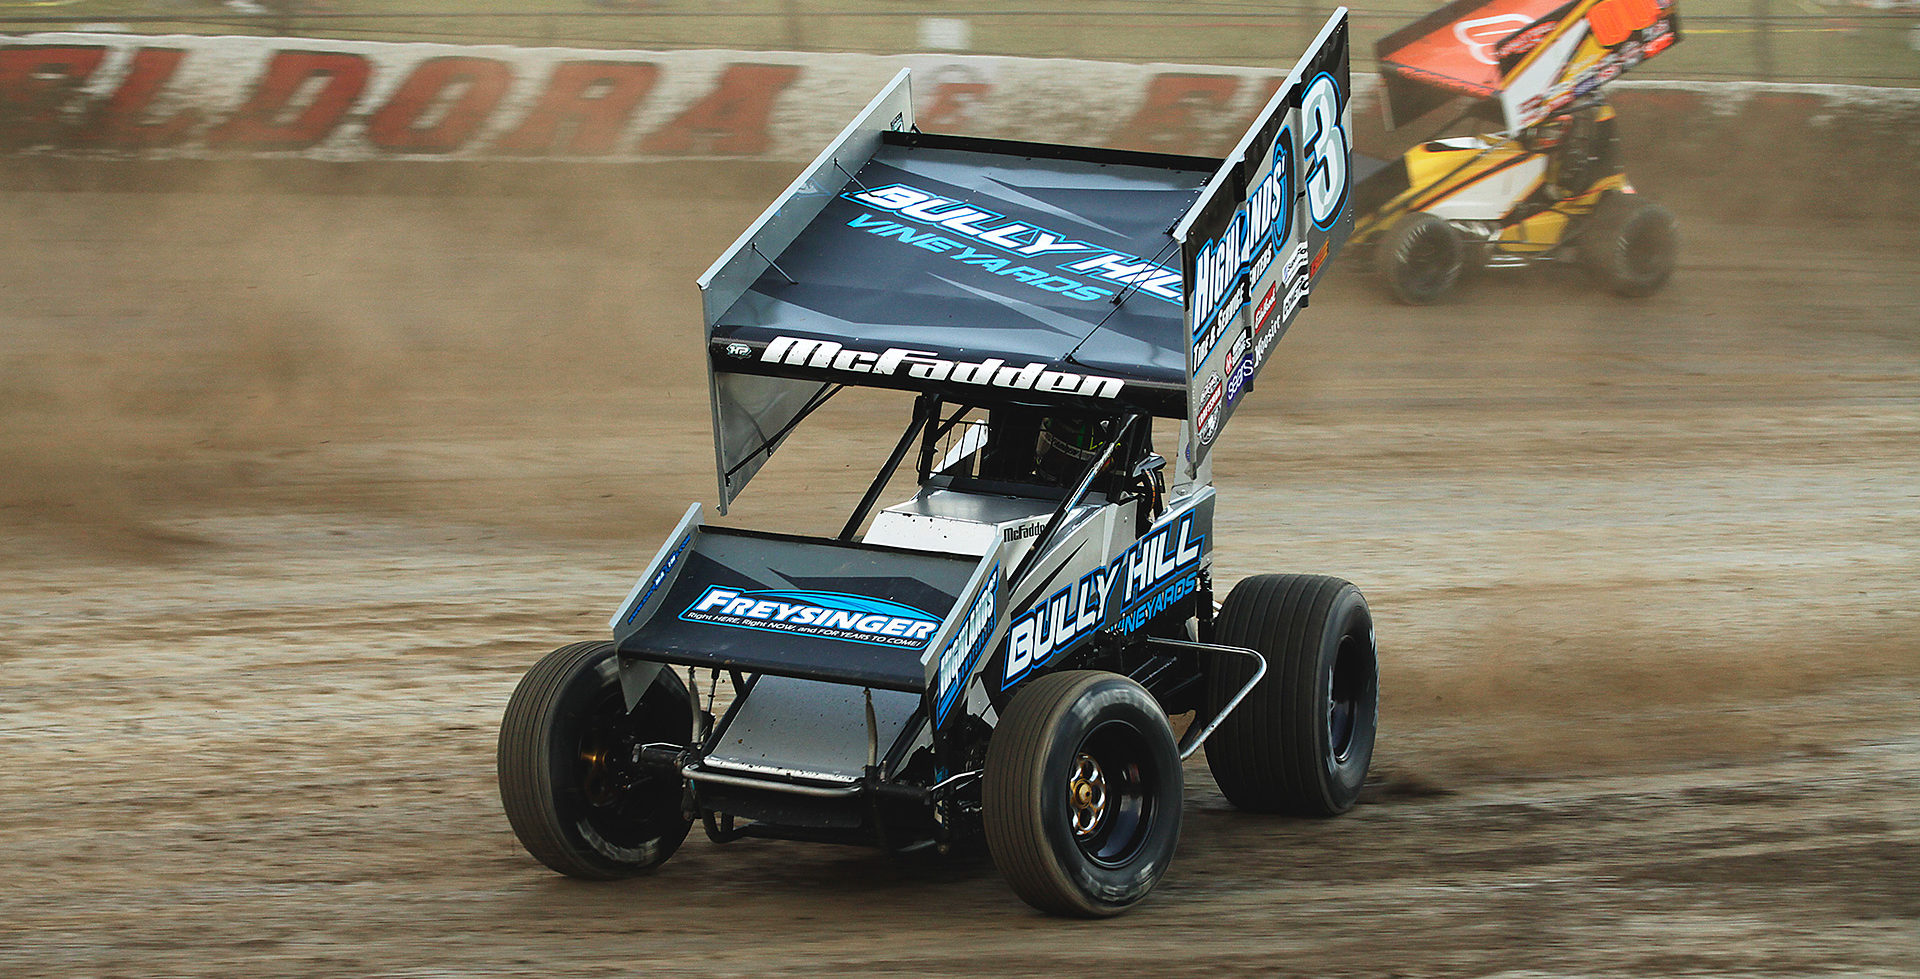 James McFadden jostles for position at The 33rd Annual Kings Royal. Unfortunately McFadden missed the final transfer spot by one, in both his heat and the Last Chance Showdown at The 2016 Kings Royal. ( Jeffrey Turford / TDP )